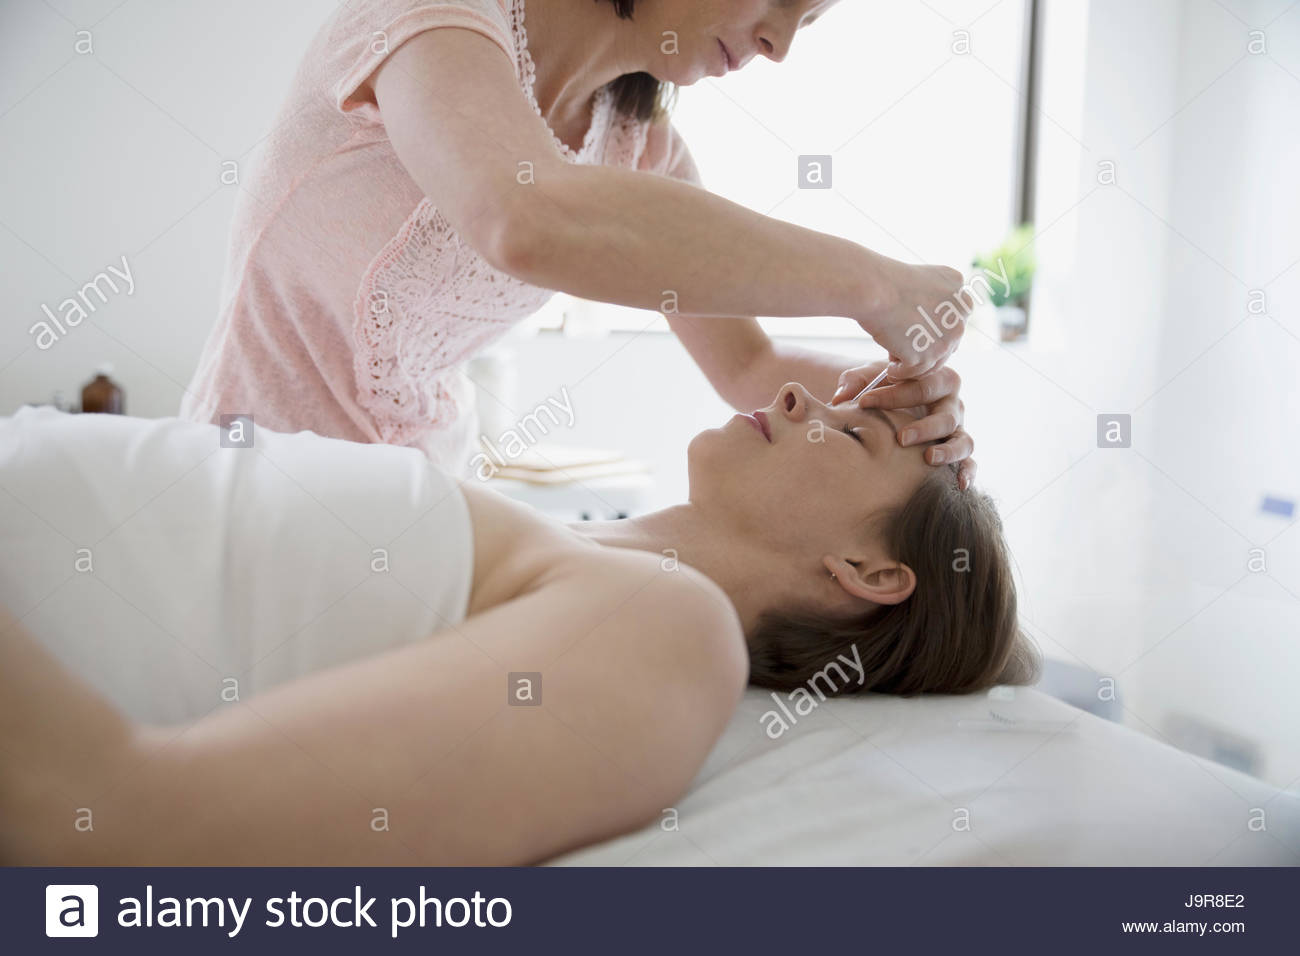 Female acupuncturist inserting needle into forehead of woman on massage table - Stock Image